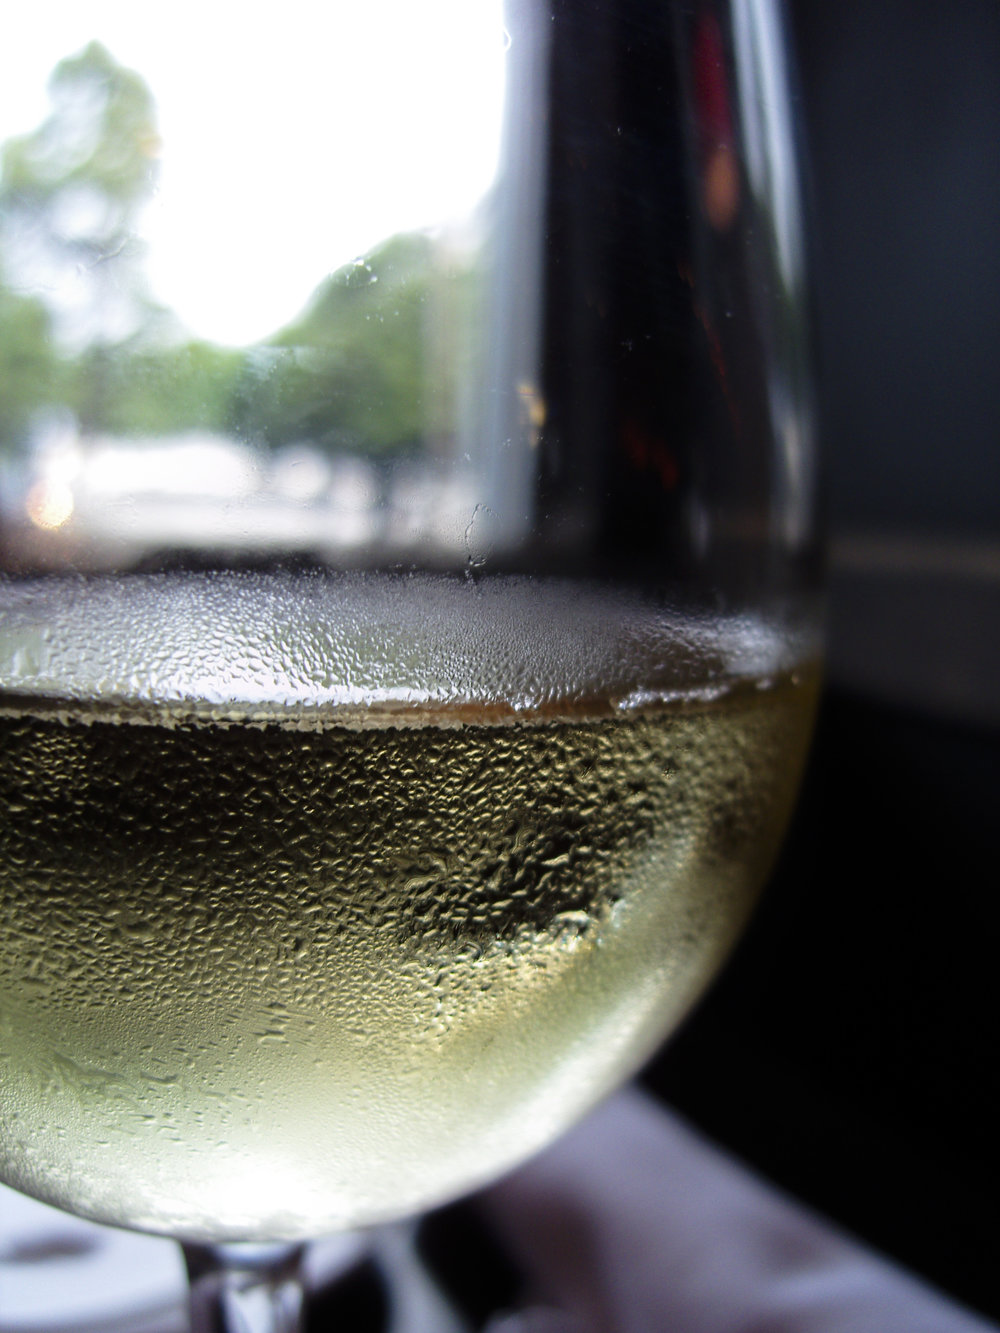 Unidentified_white_wine_in_glass.jpg